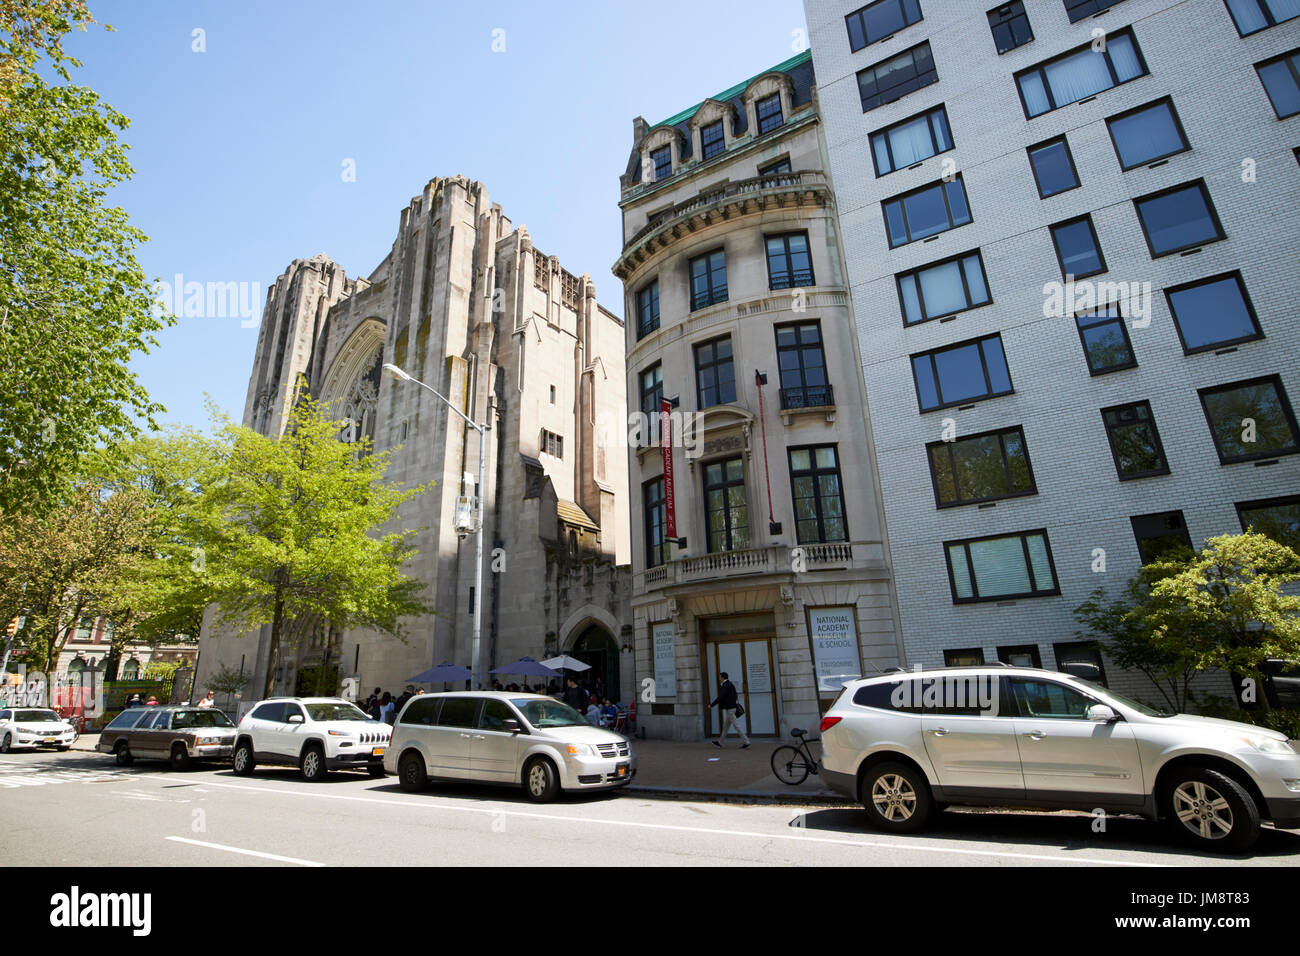 archer milton huntington residence national academy museum and school building and church of the heavenly rest New York City USA - Stock Image